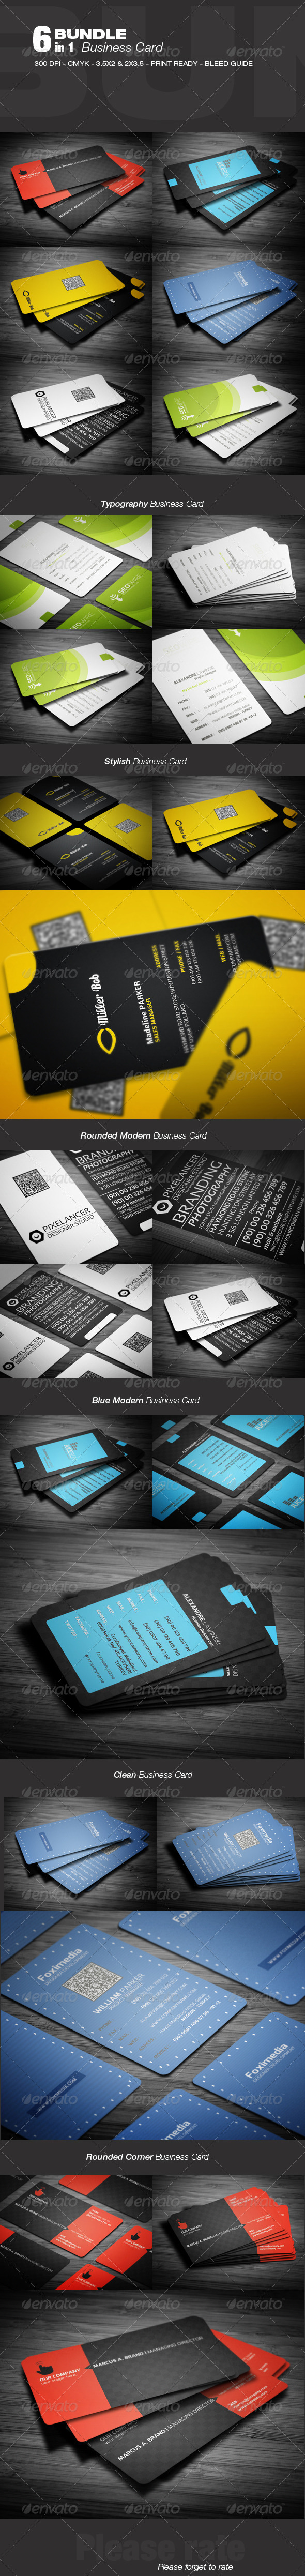 GraphicRiver Business Card Bundle v.1 3603213